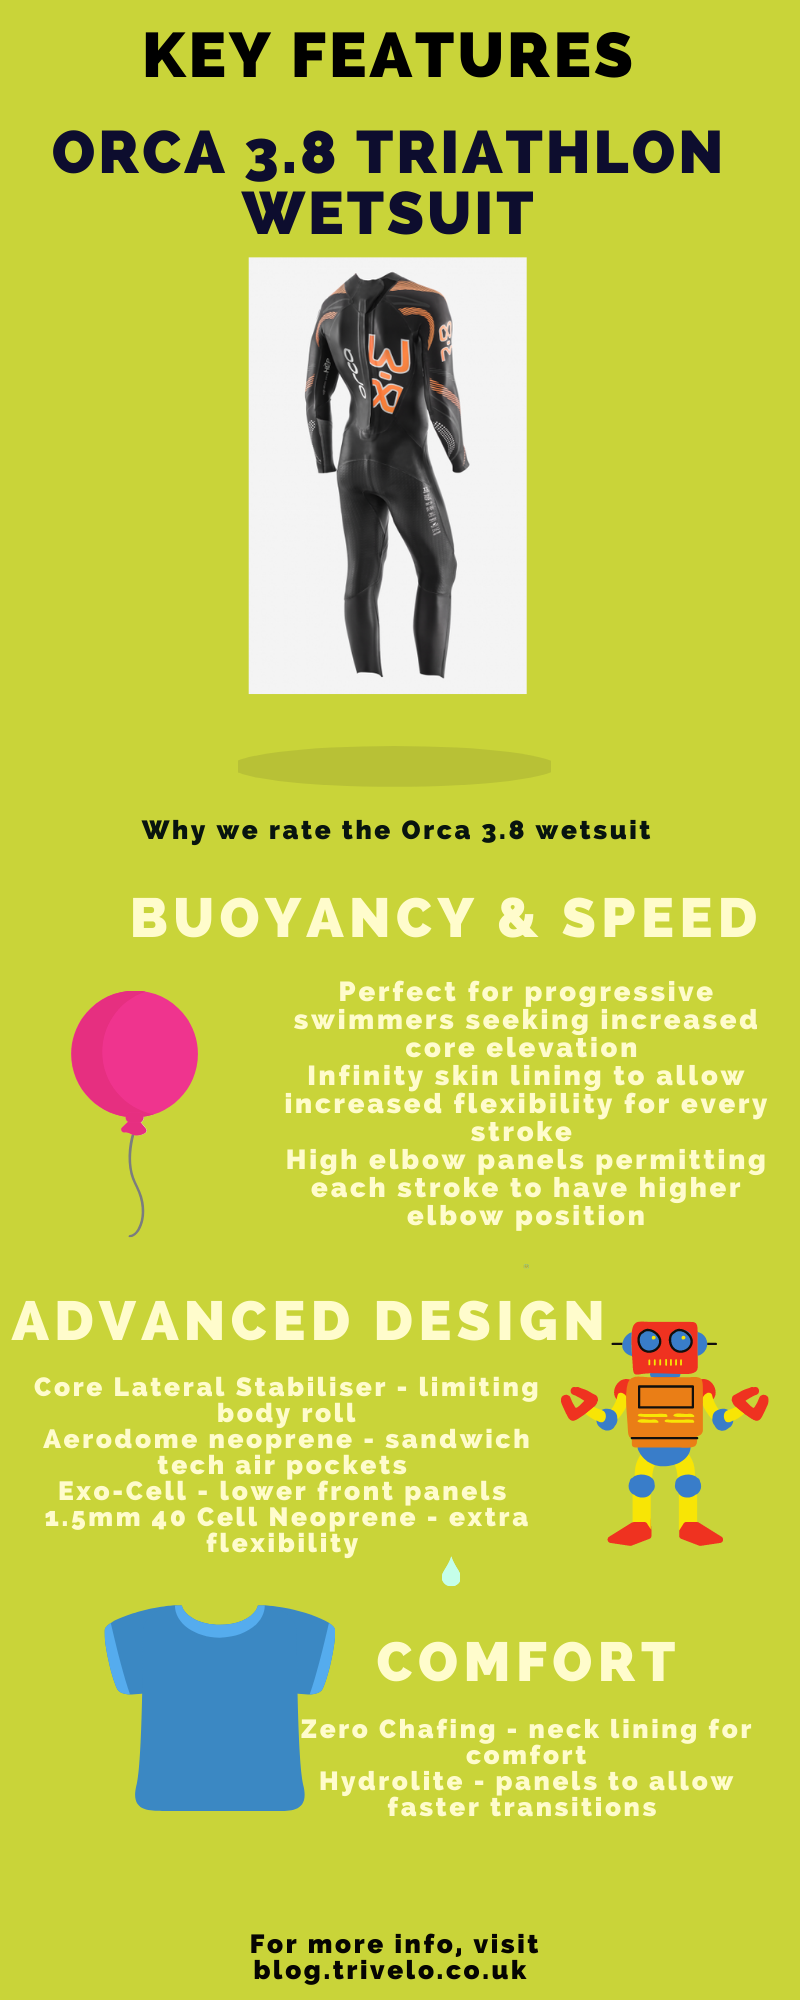 Orca-3.8-triathlon-wetsuit-key-features-infographic